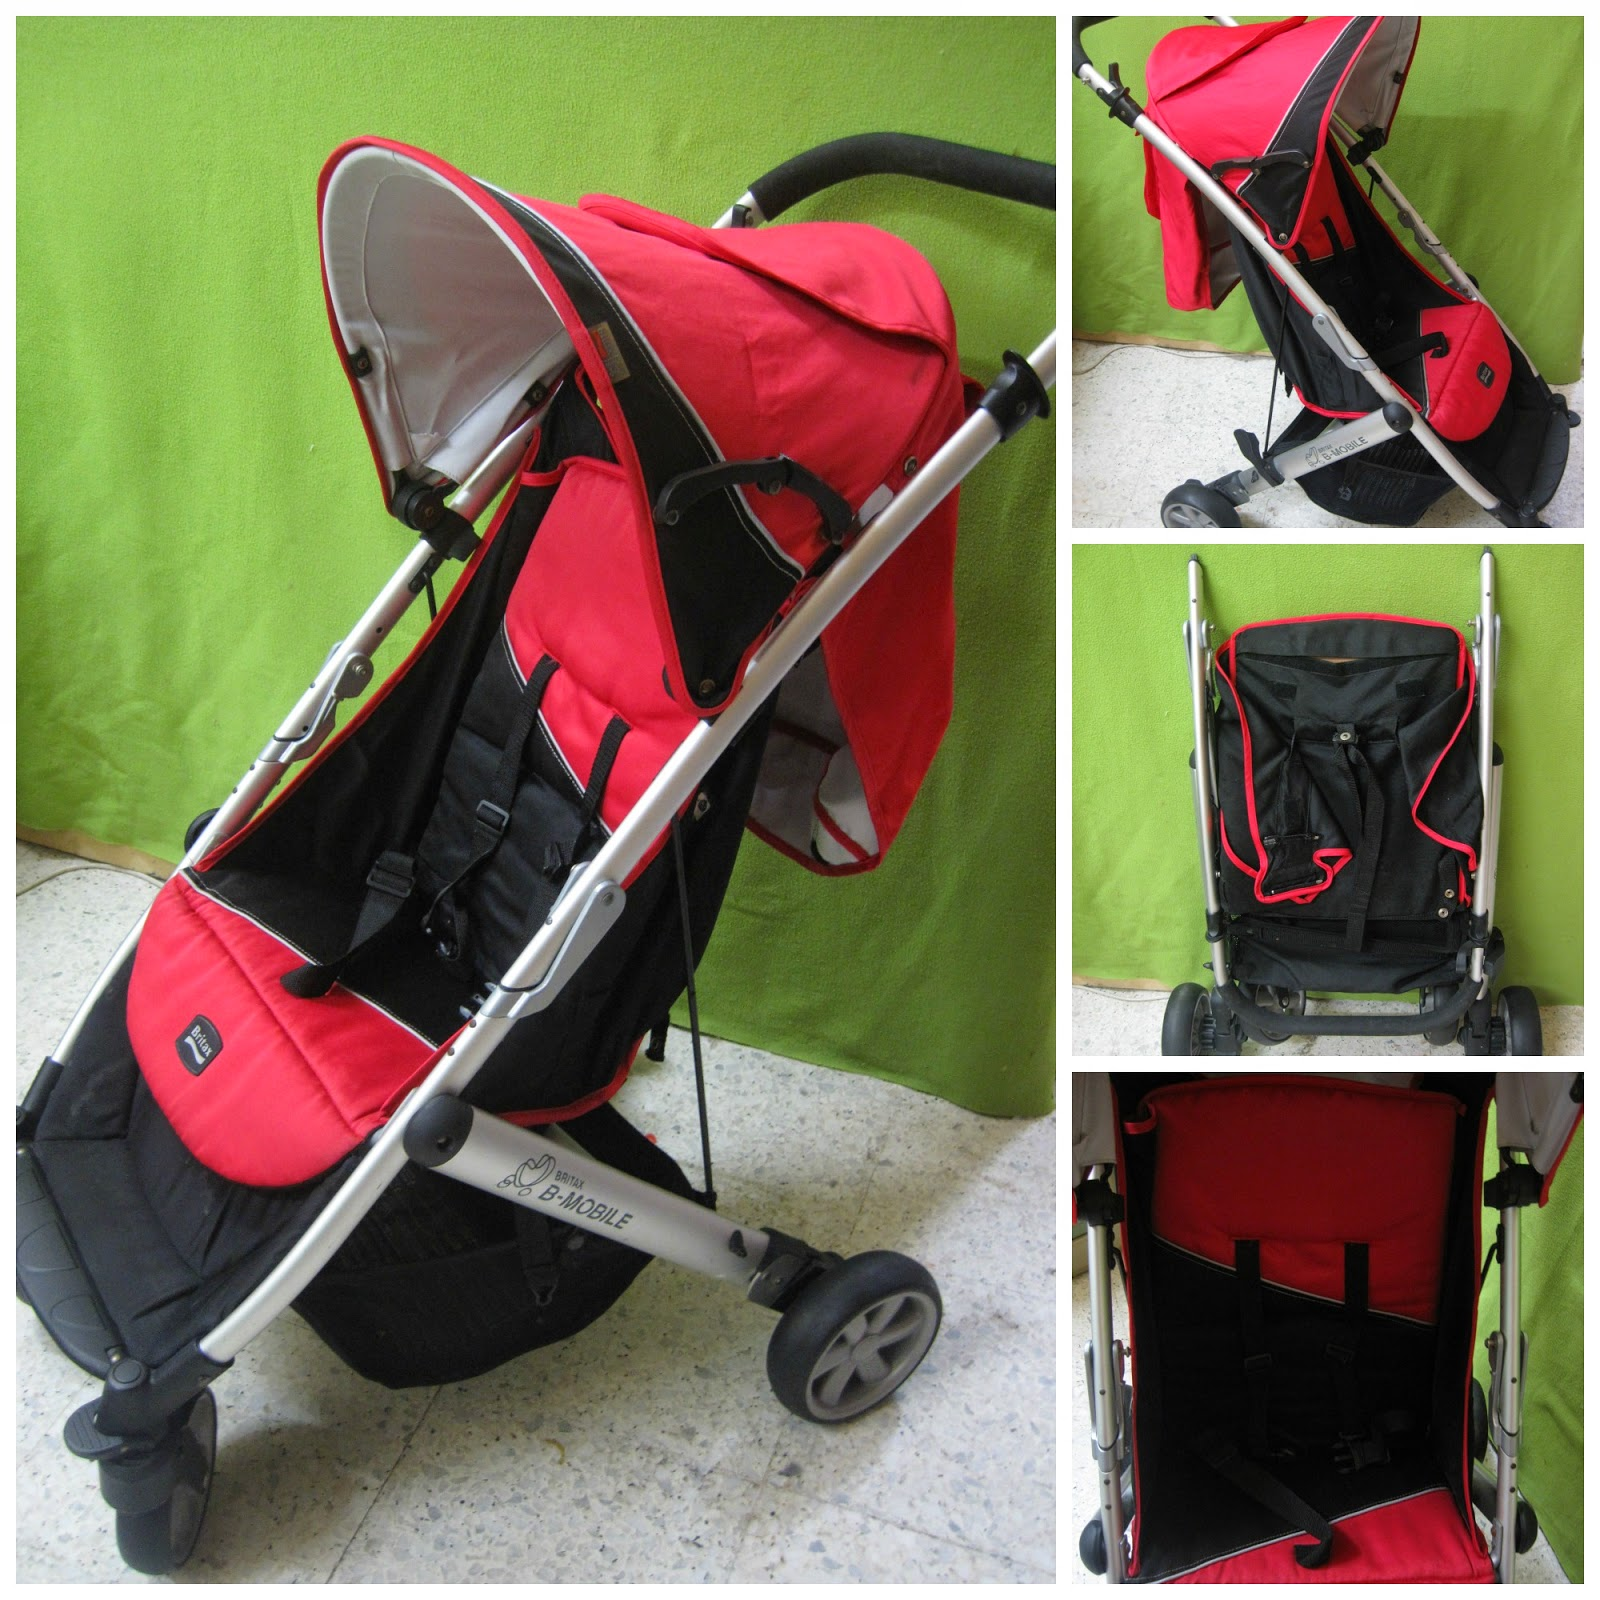 amy sweety store britax b mobile stroller. Black Bedroom Furniture Sets. Home Design Ideas